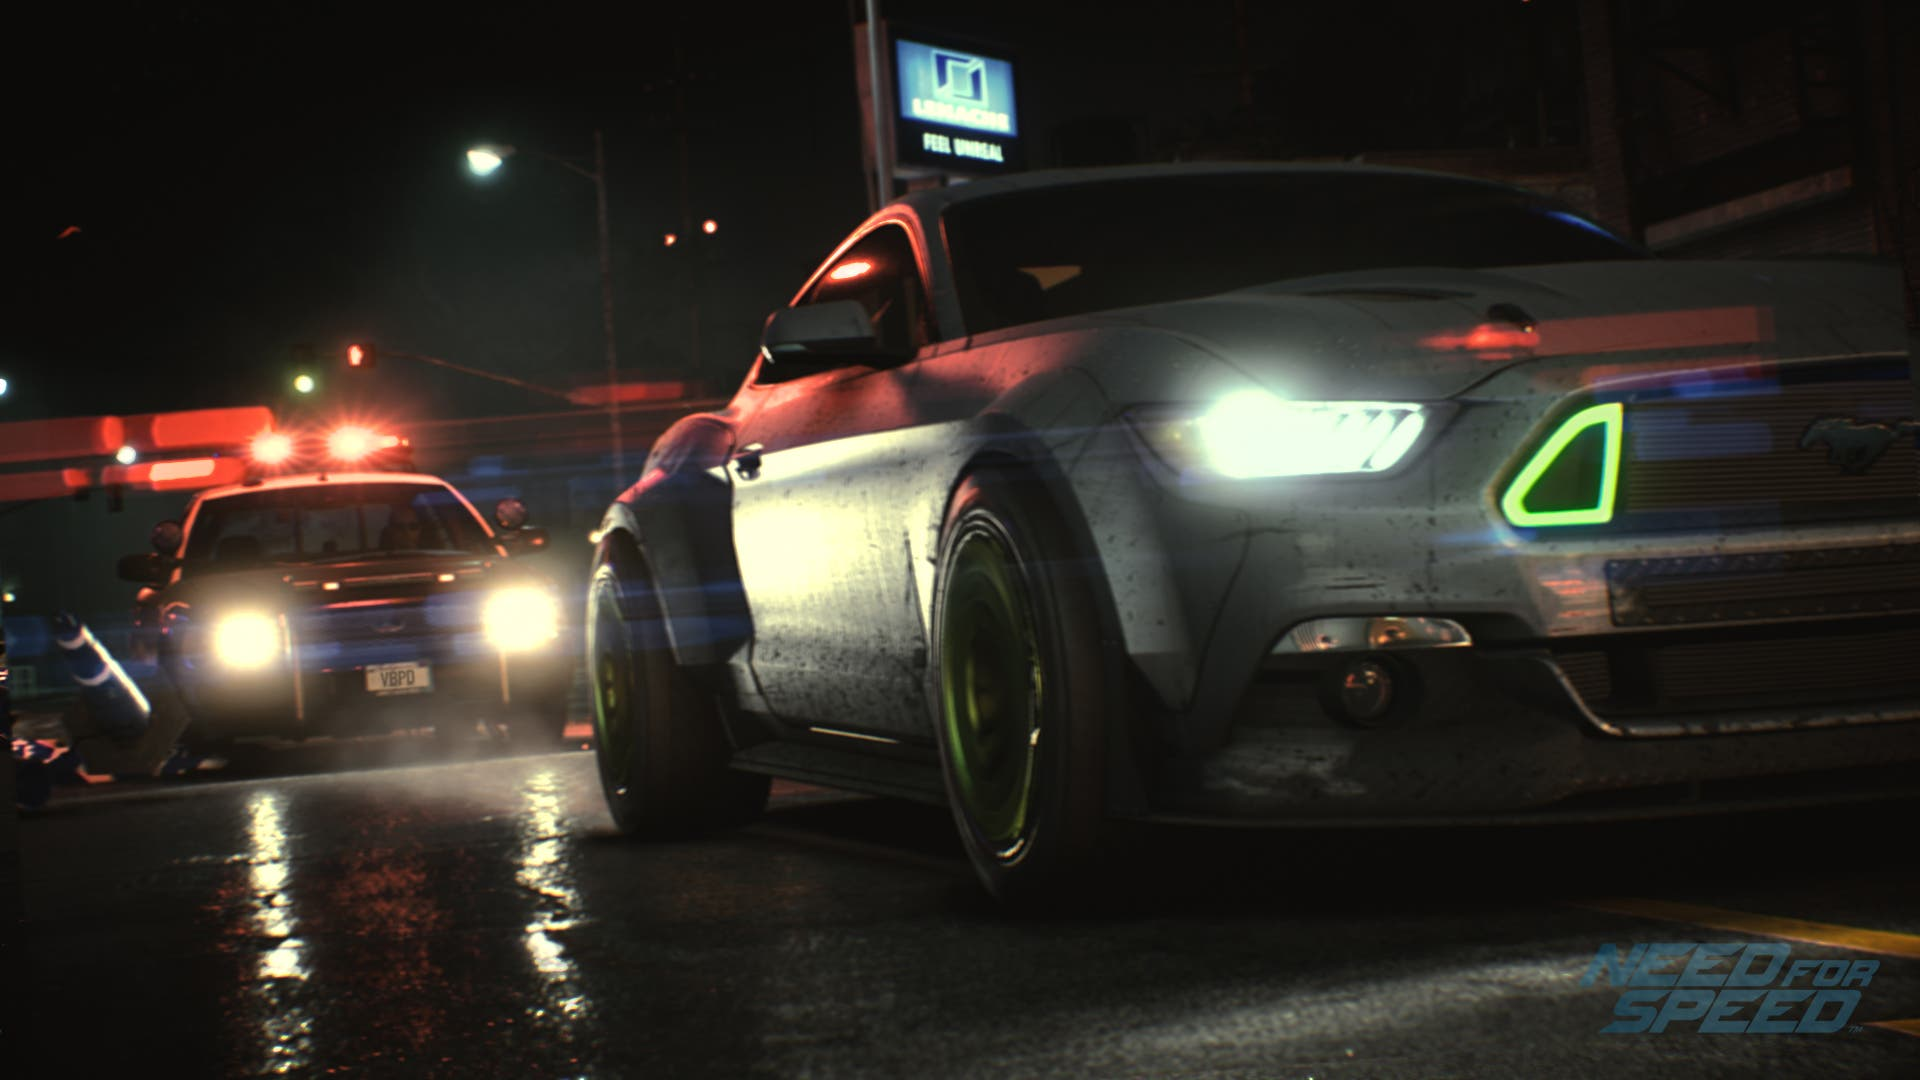 NeedForSpeed-review(1)